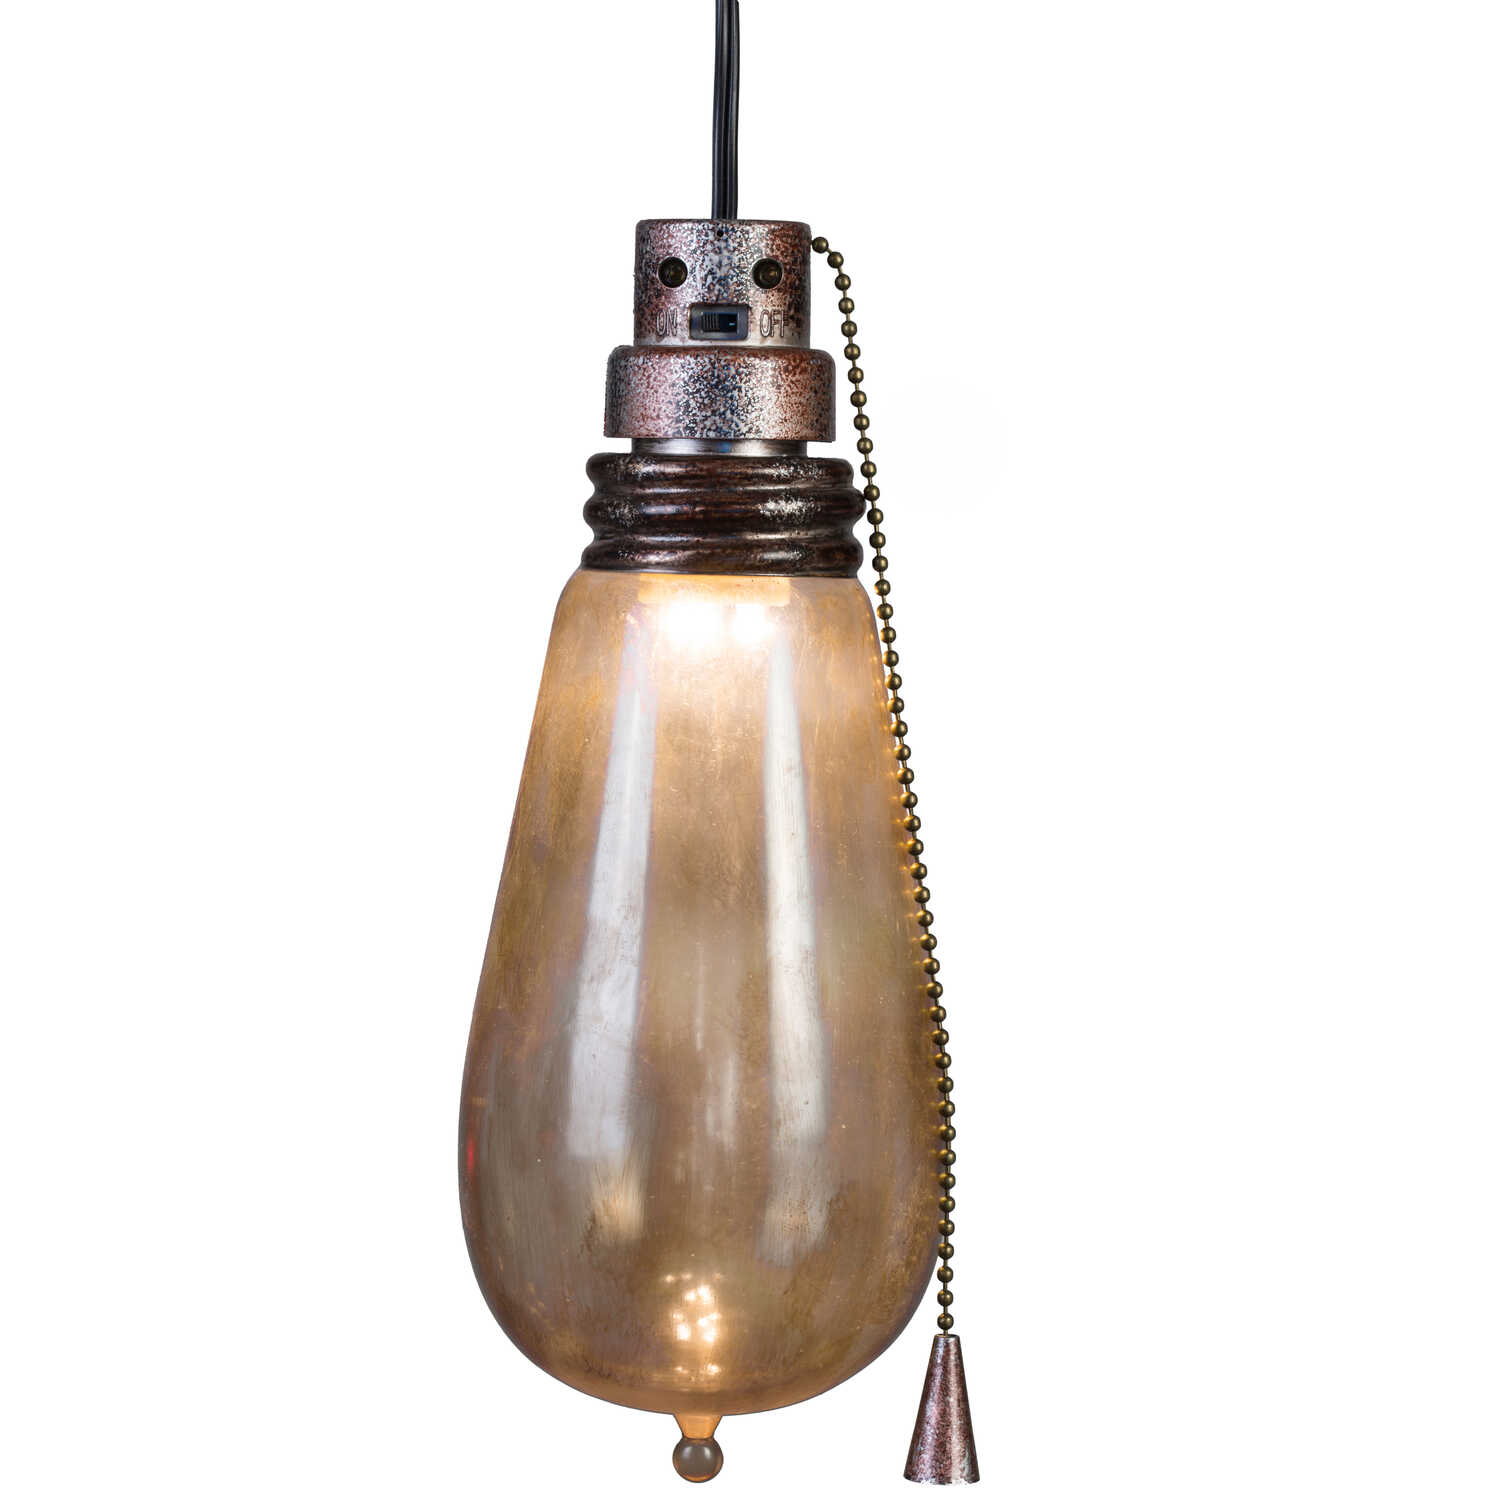 Gemmy  Short Circuit  Rusty Attic Light Bulb  Lighted Halloween Decoration  4 in. H x 4 in. W x 9-1/